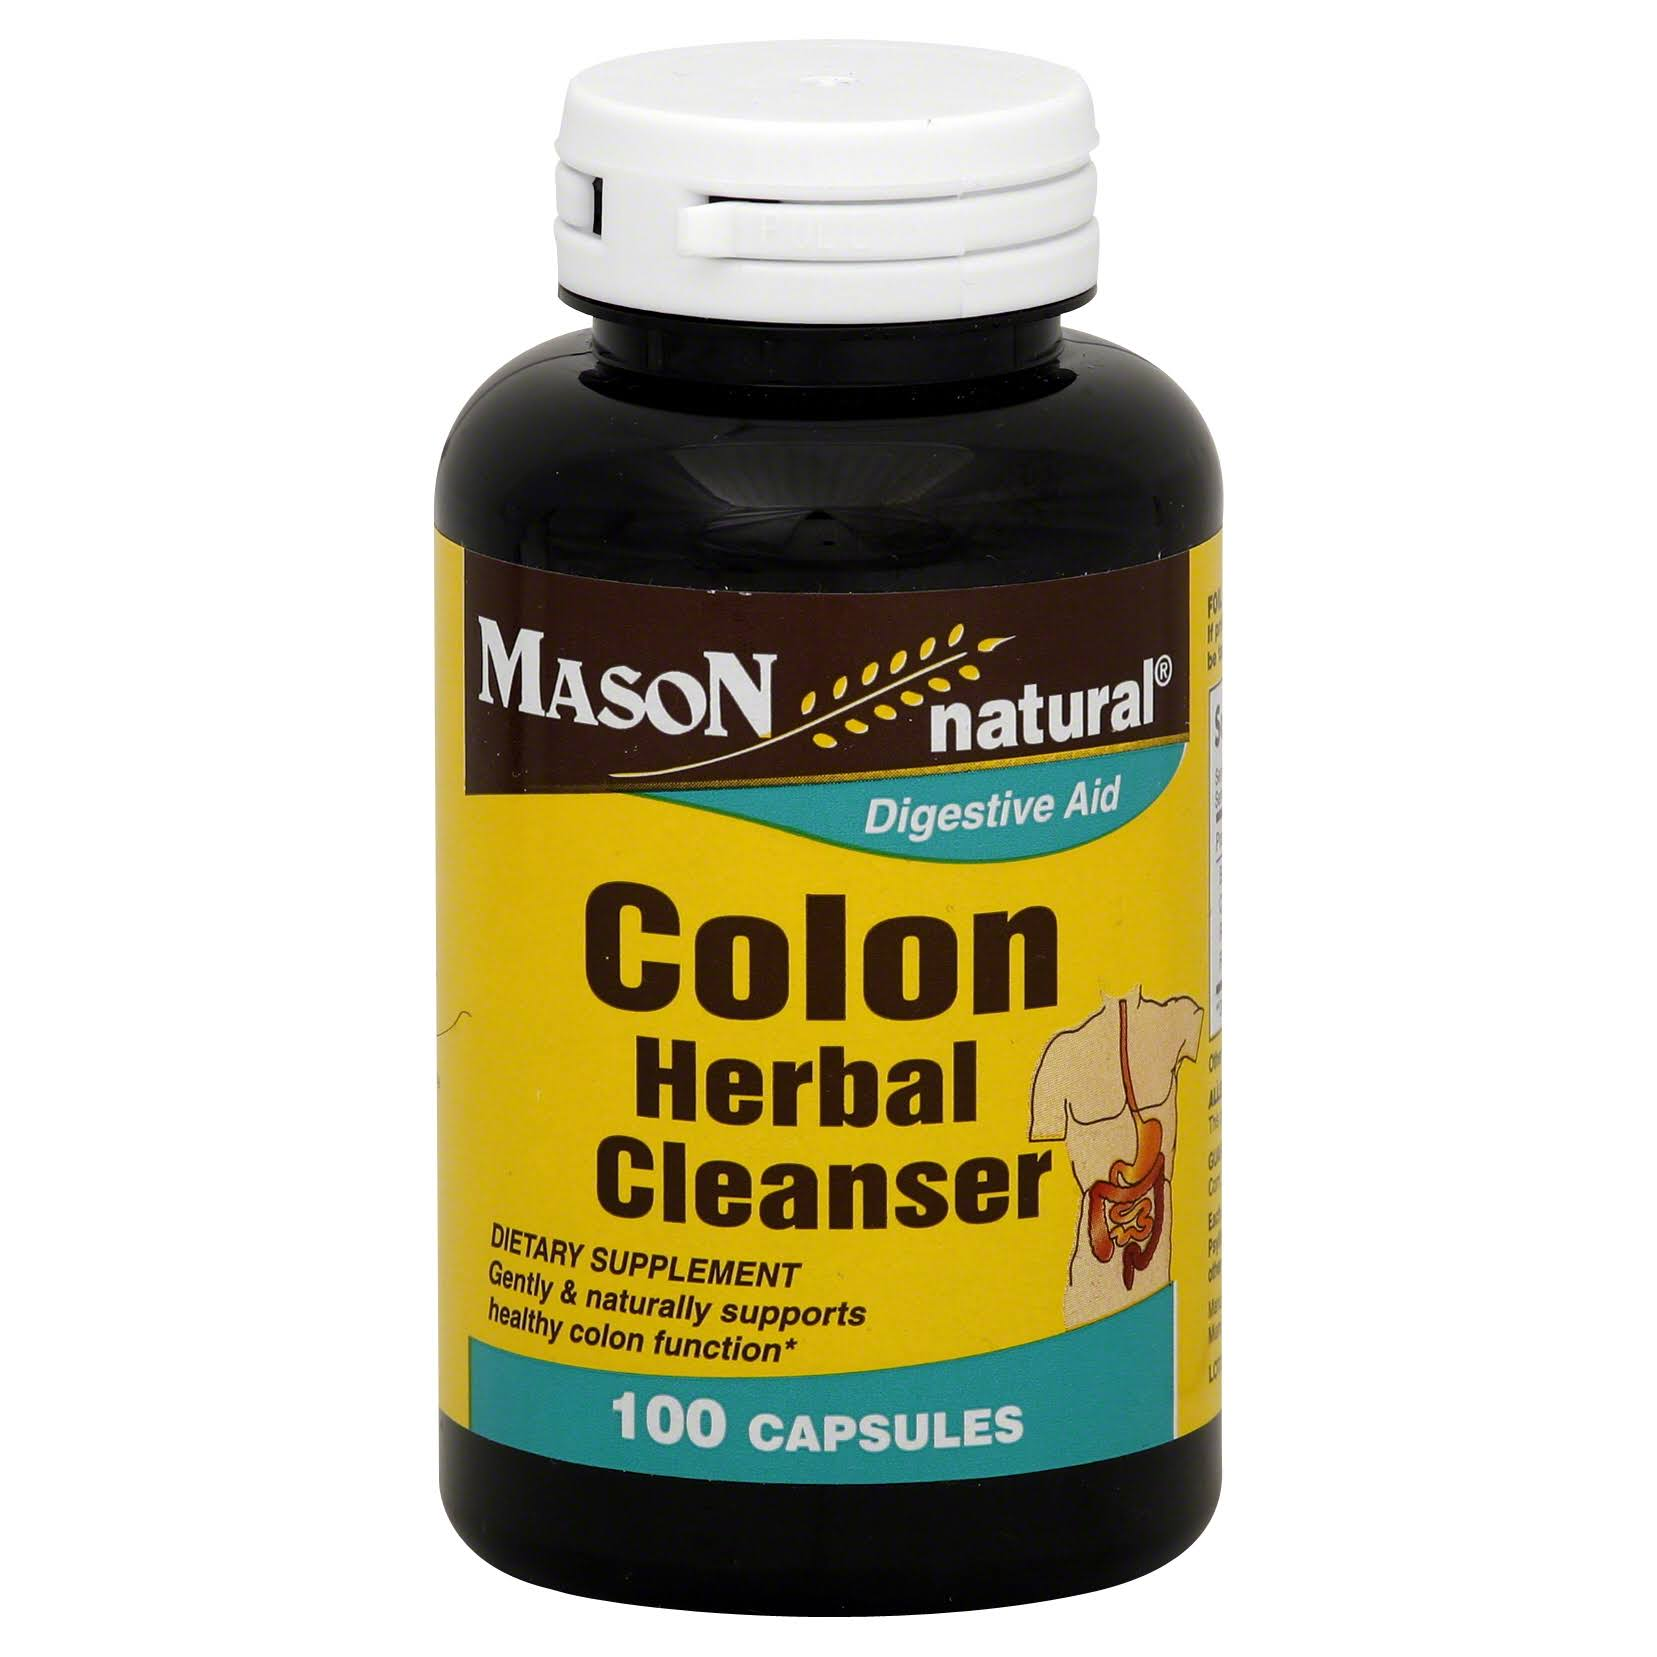 Mason Natural Digestive Aid Colon Herbal Cleanser - 1000 Capsules